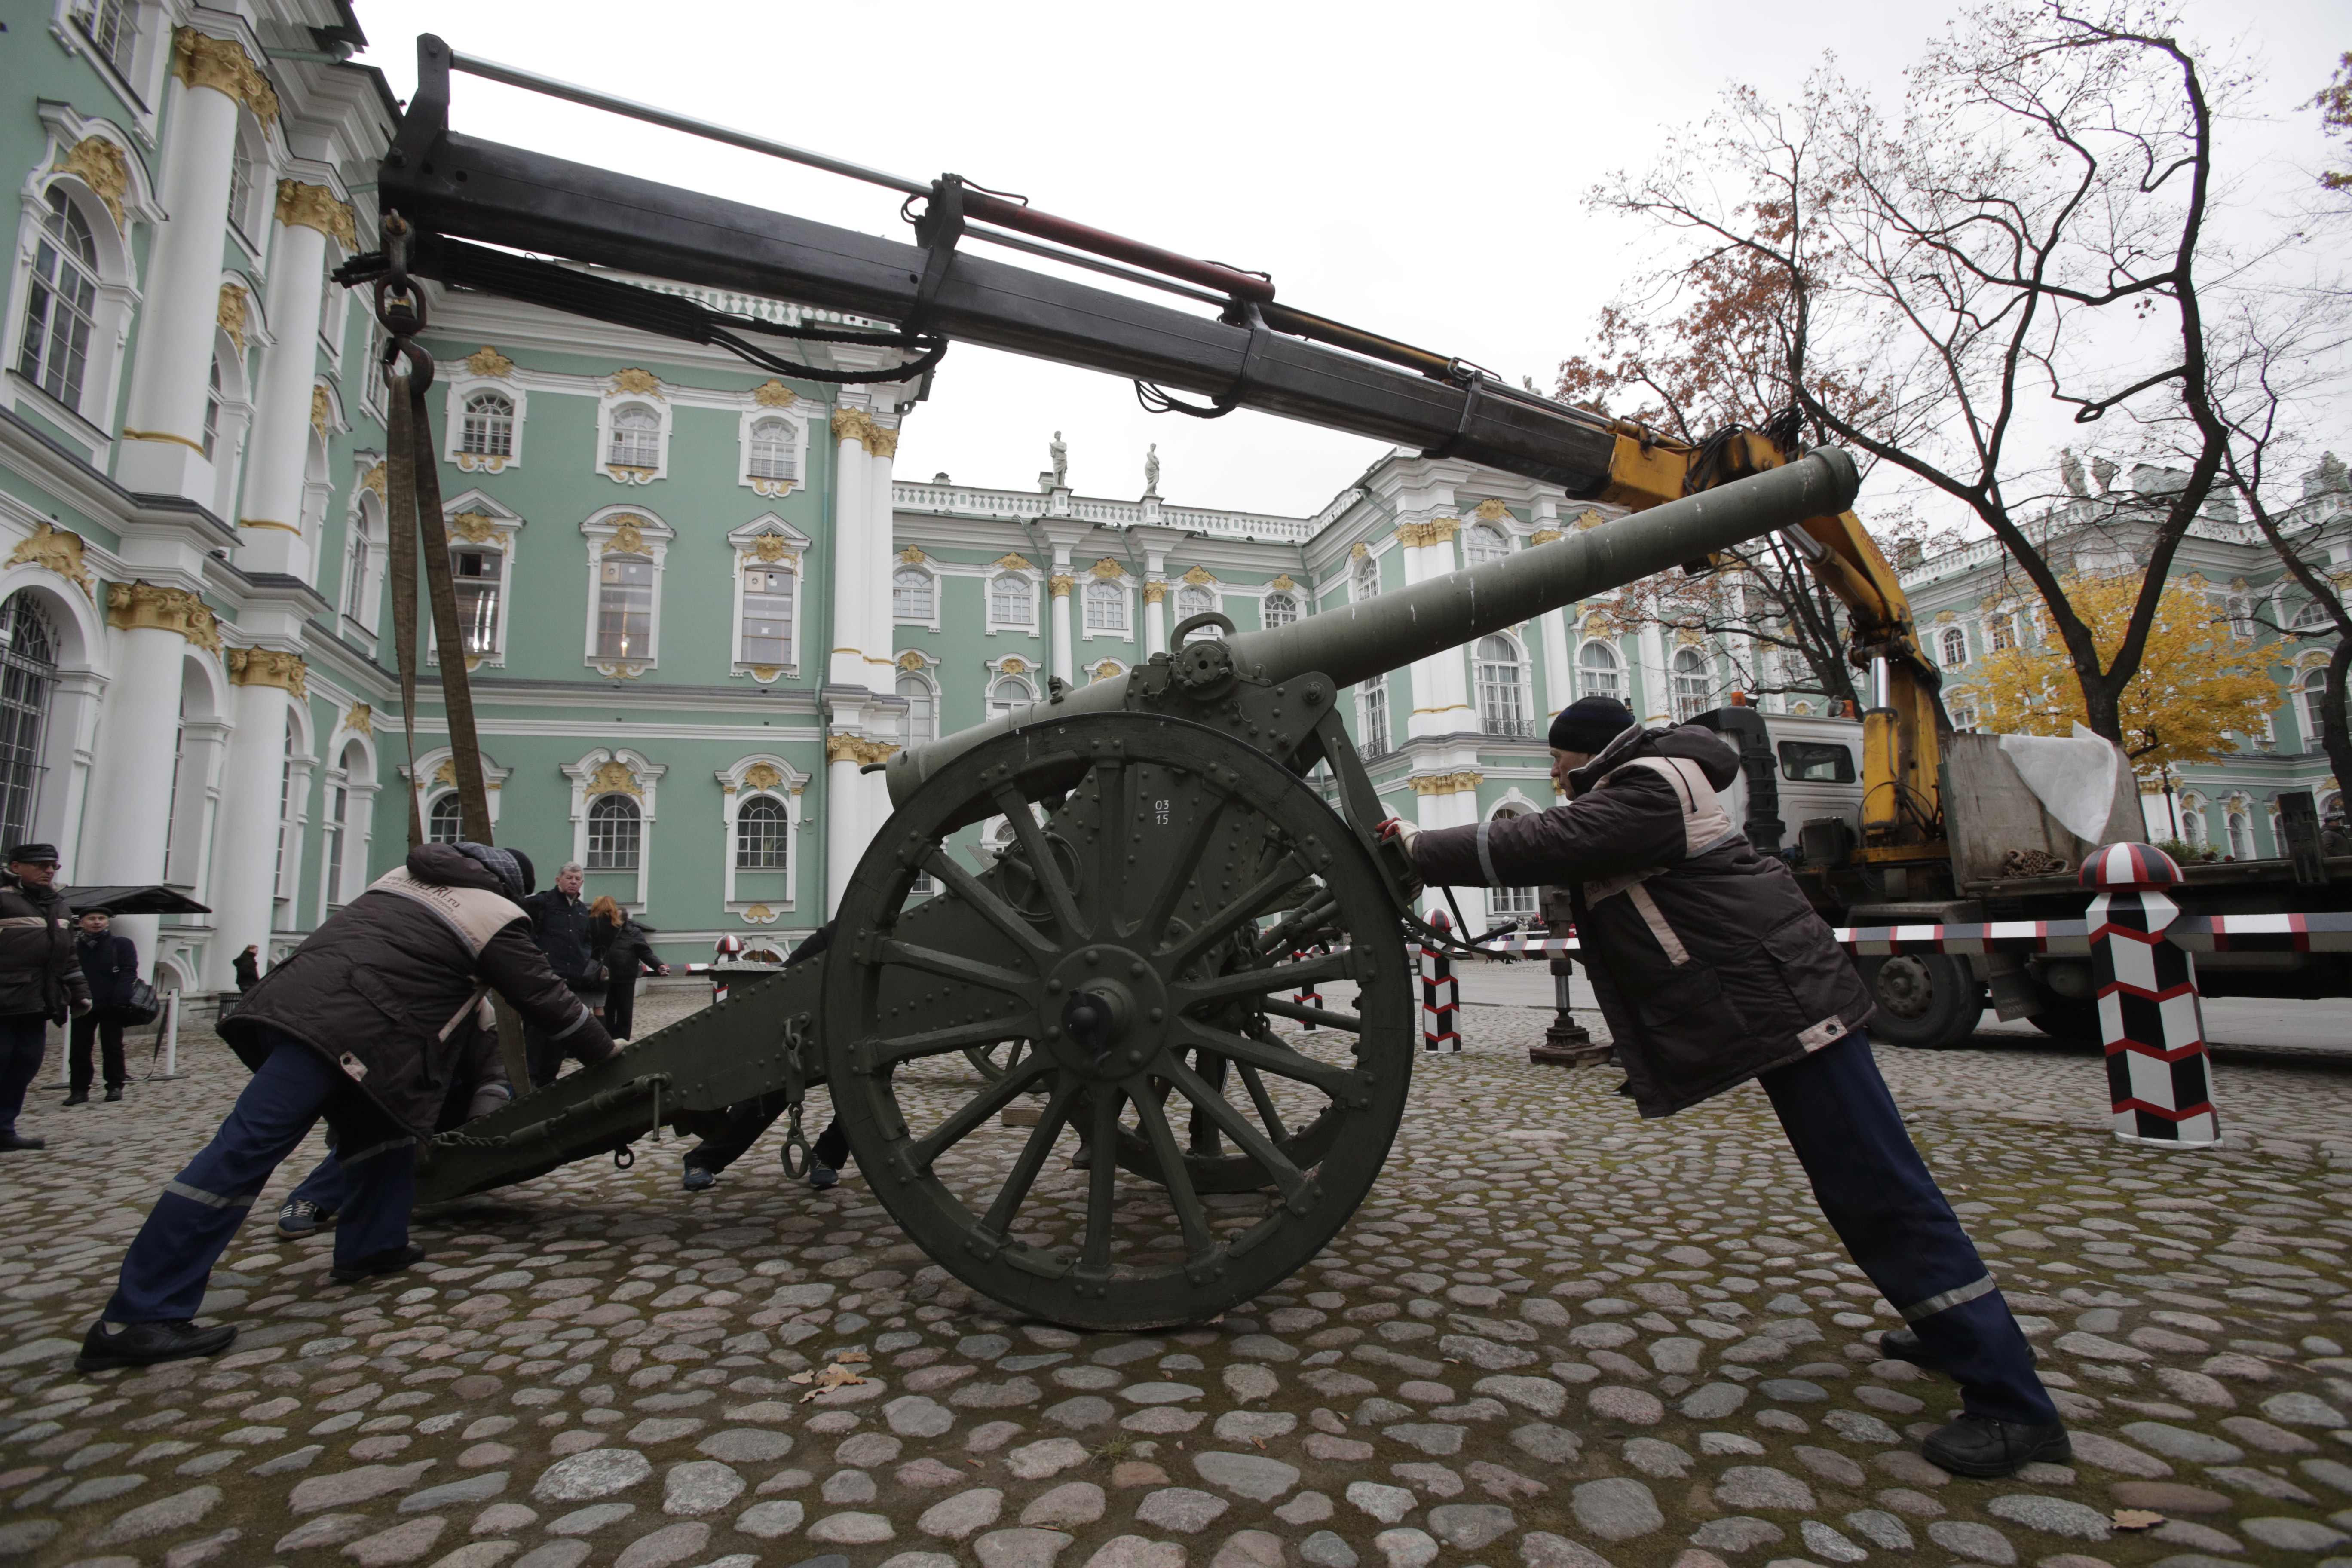 Workers install a gun in the yard of the Winter Palace in the State Hermitage Museum in St.Petersburg, Russia, Oct. 24, 2017, as part of preparations for an exhibition marking the centenary of the October Revolution.